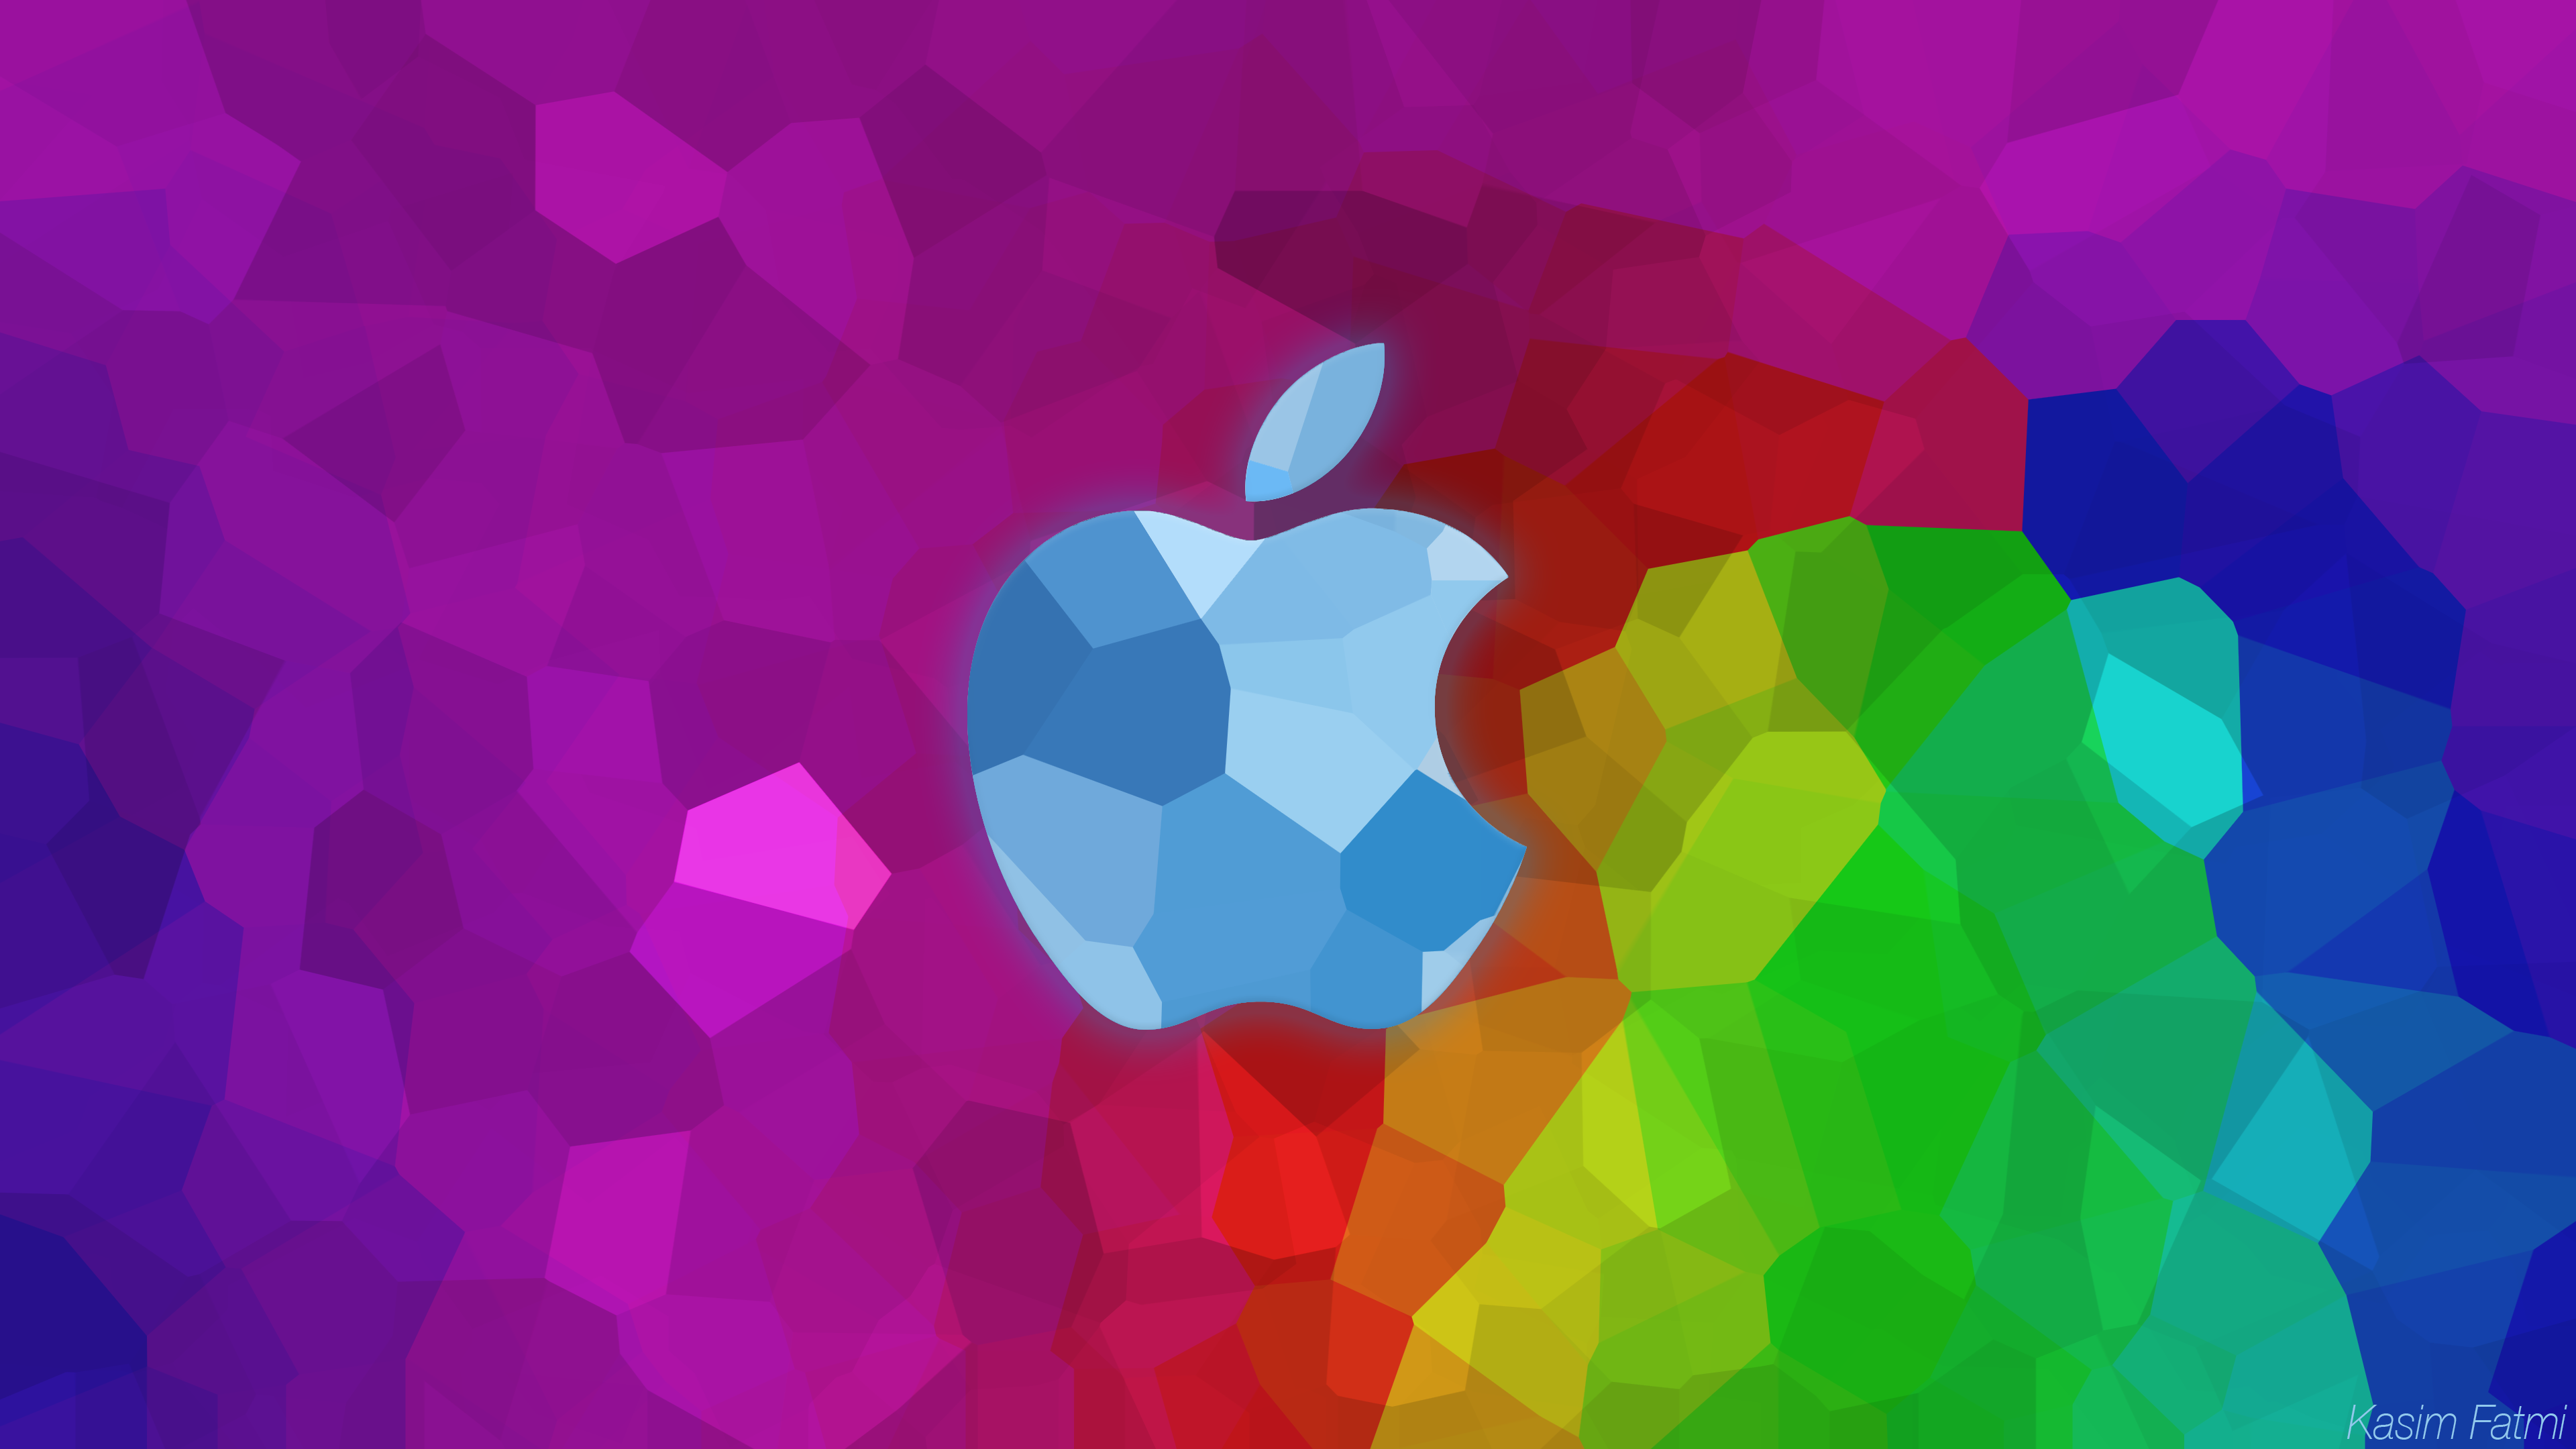 Apple Wallpaper 3 4K by Kasimfatmi 3840x2160